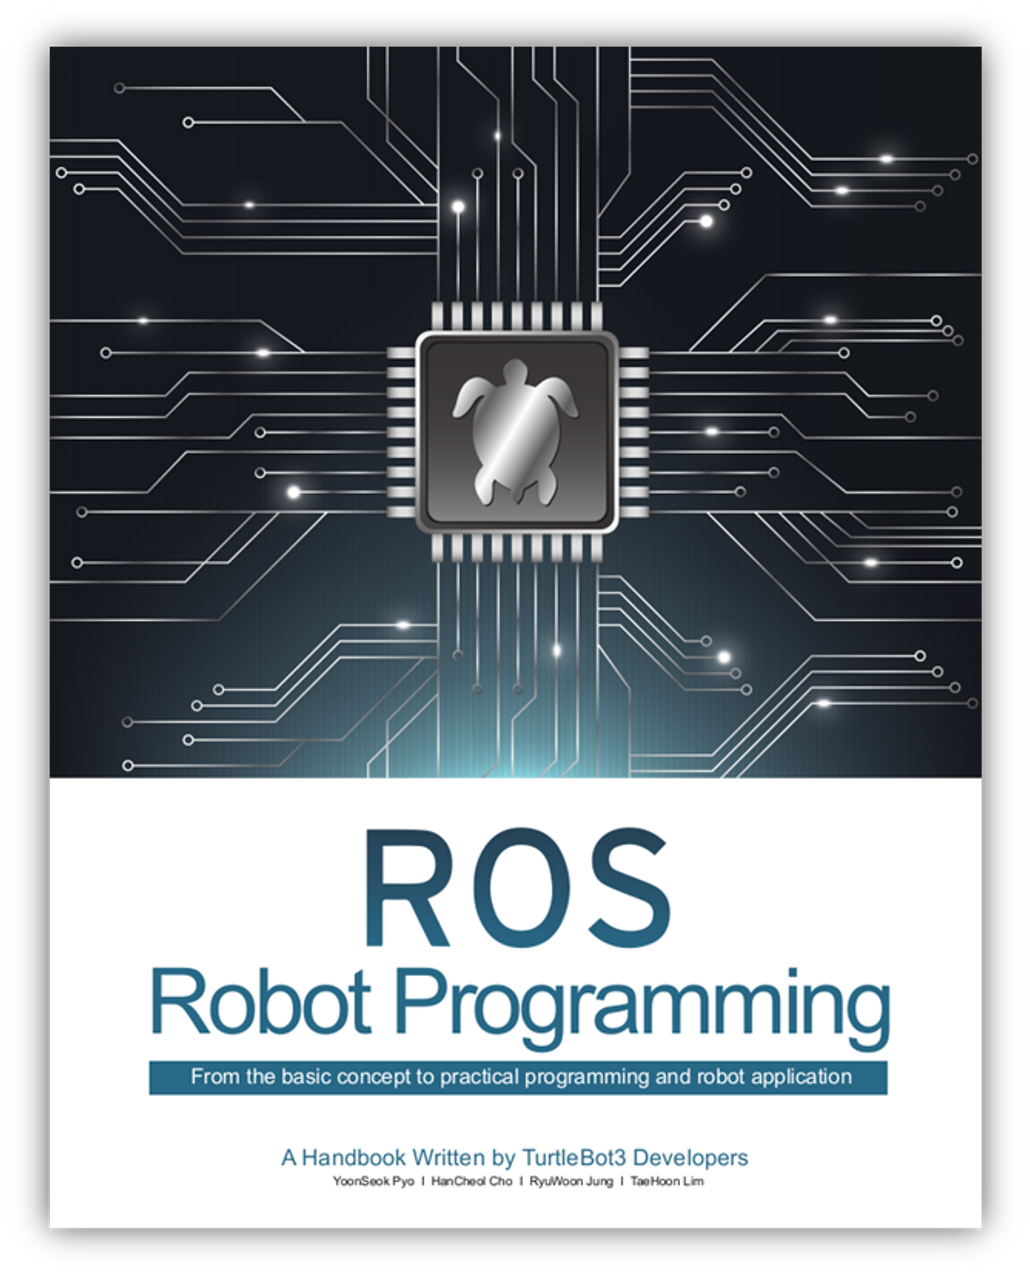 ROS Robot Programming Book